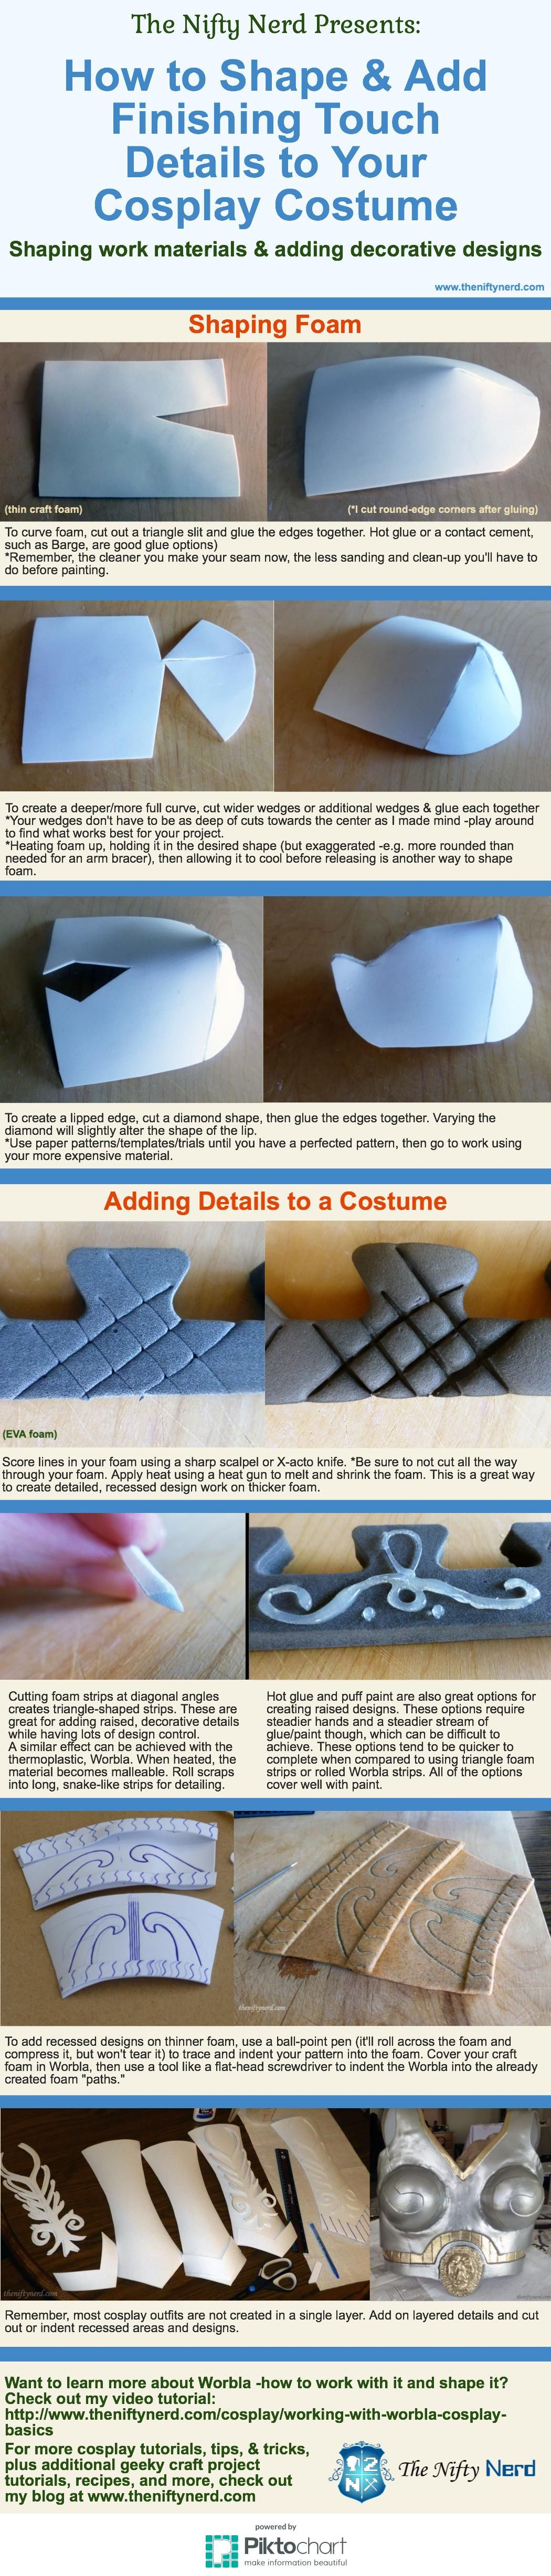 Infographic Adding Details Finishing Touches To Cosplay Costumes